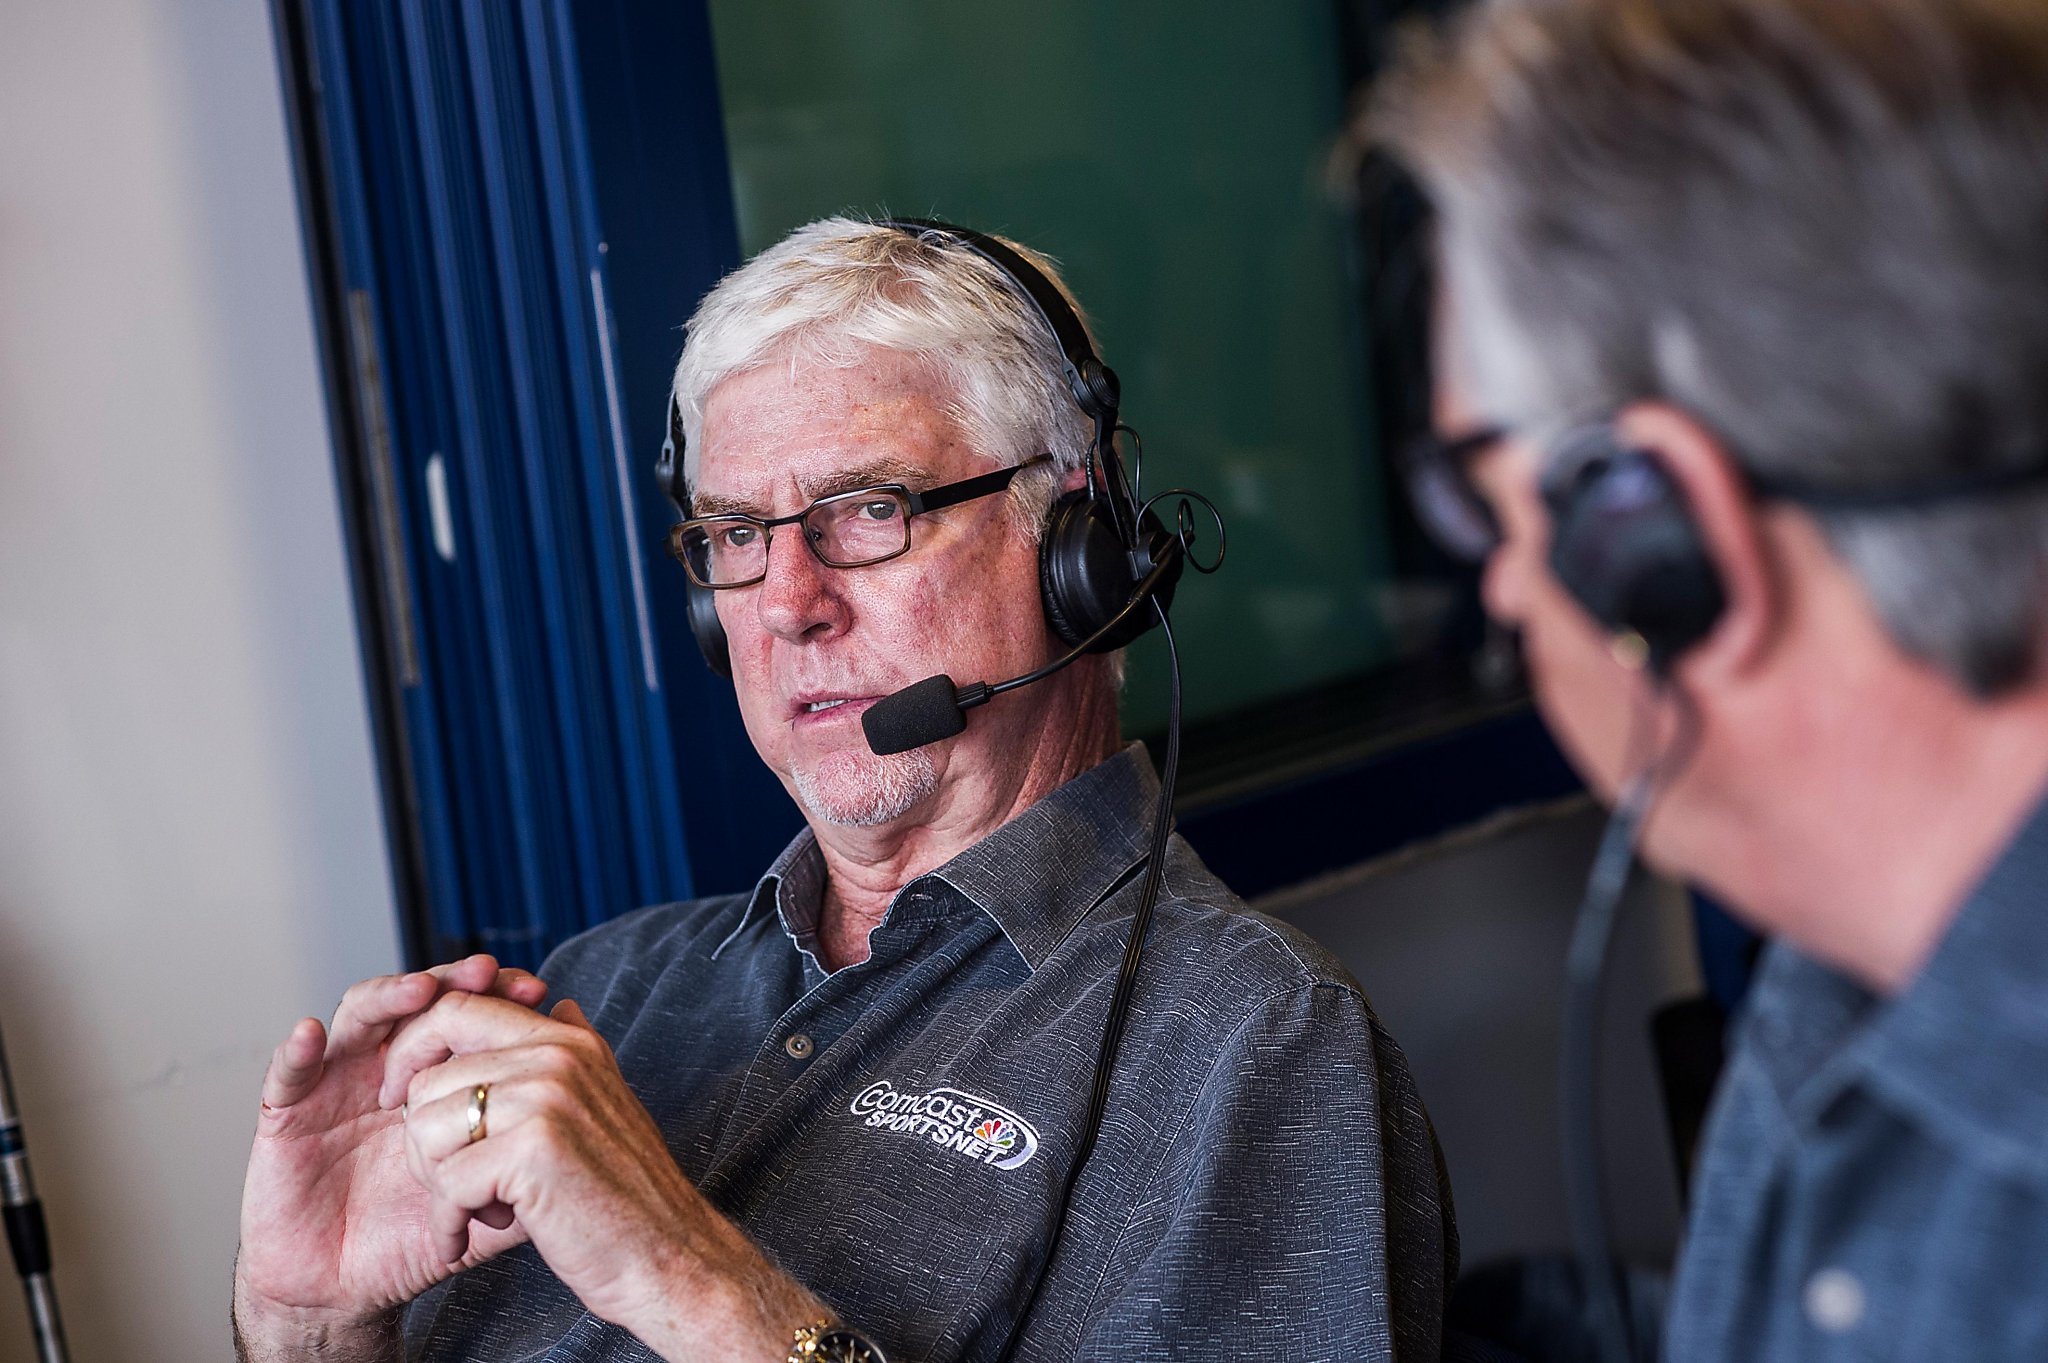 Giants to televise three spring training games with Mike Krukow in booth